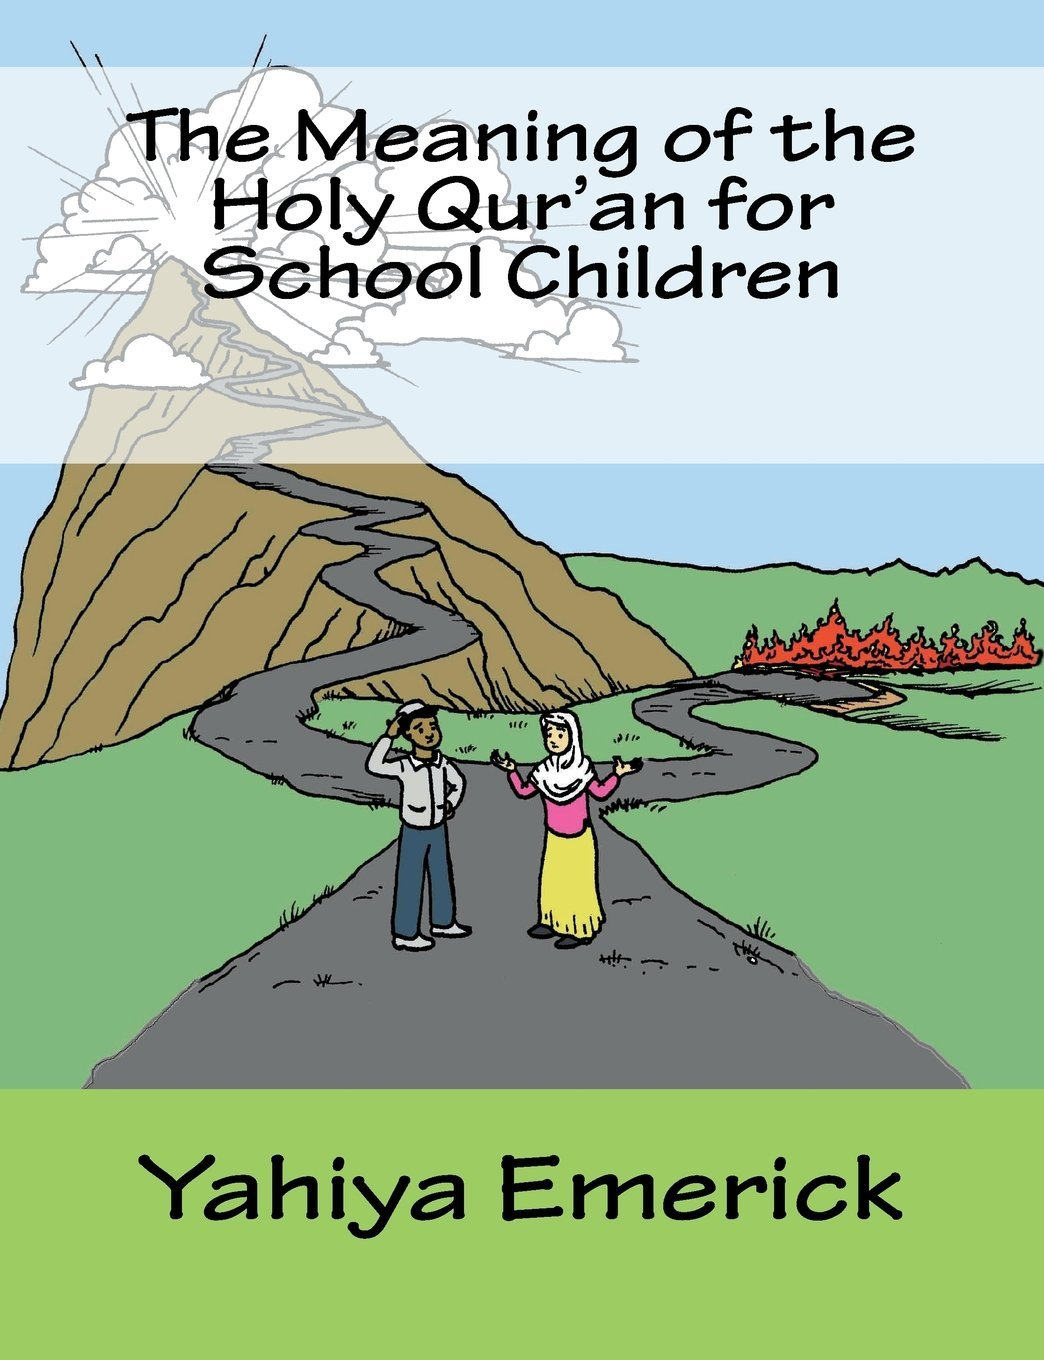 The Meaning of the Holy Qur'an for School Children: Yahiya